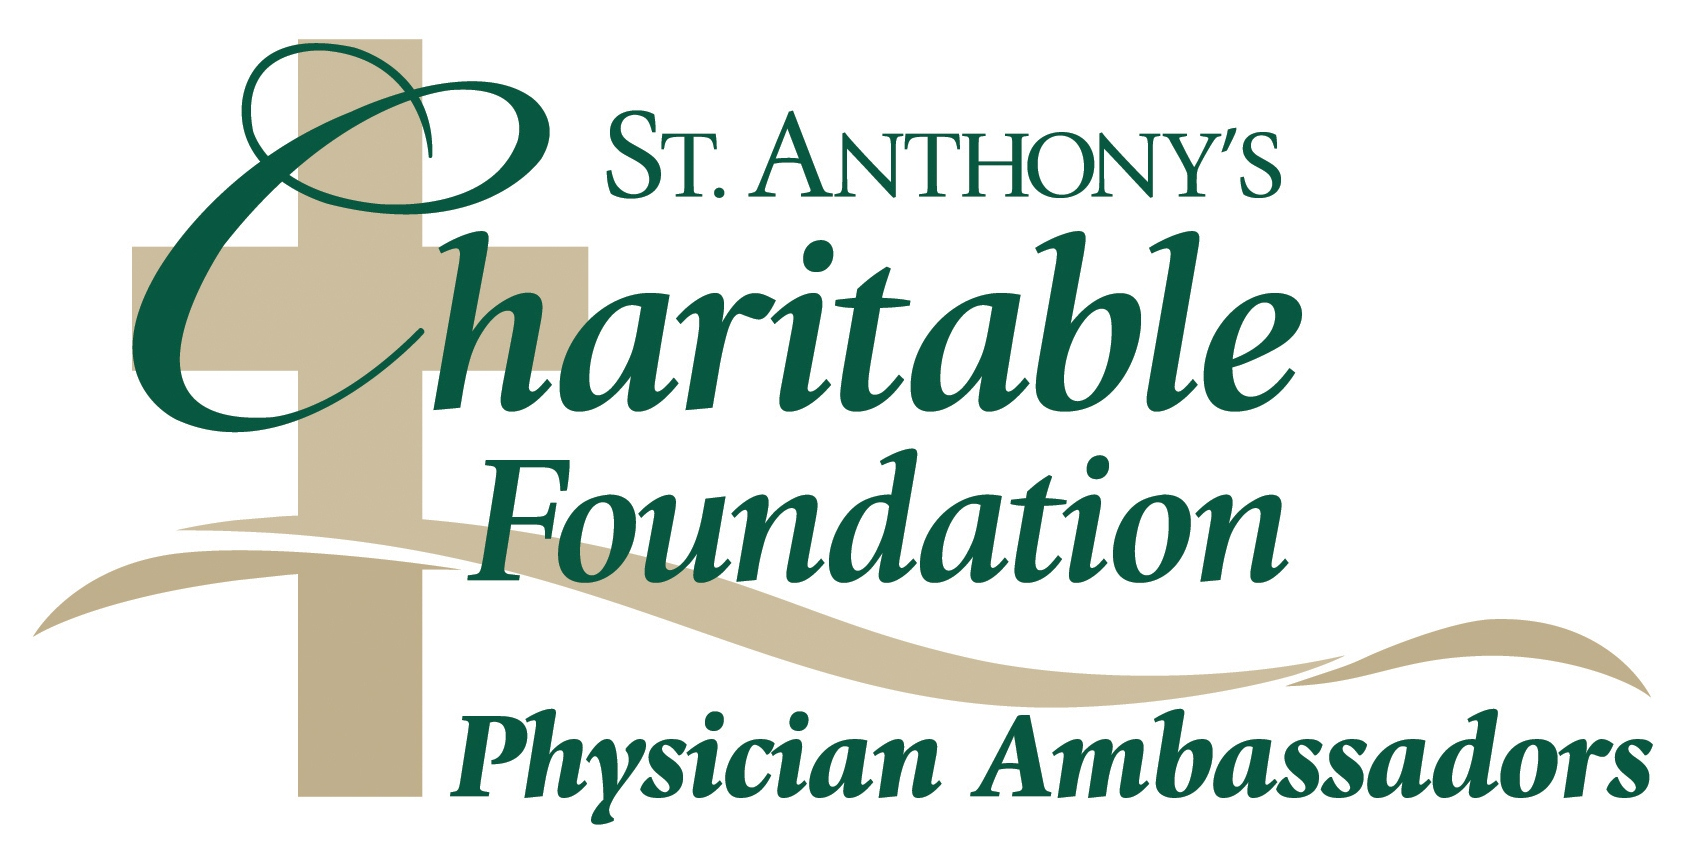 St. Anthony's Charitable Foundation Physician Ambassadors